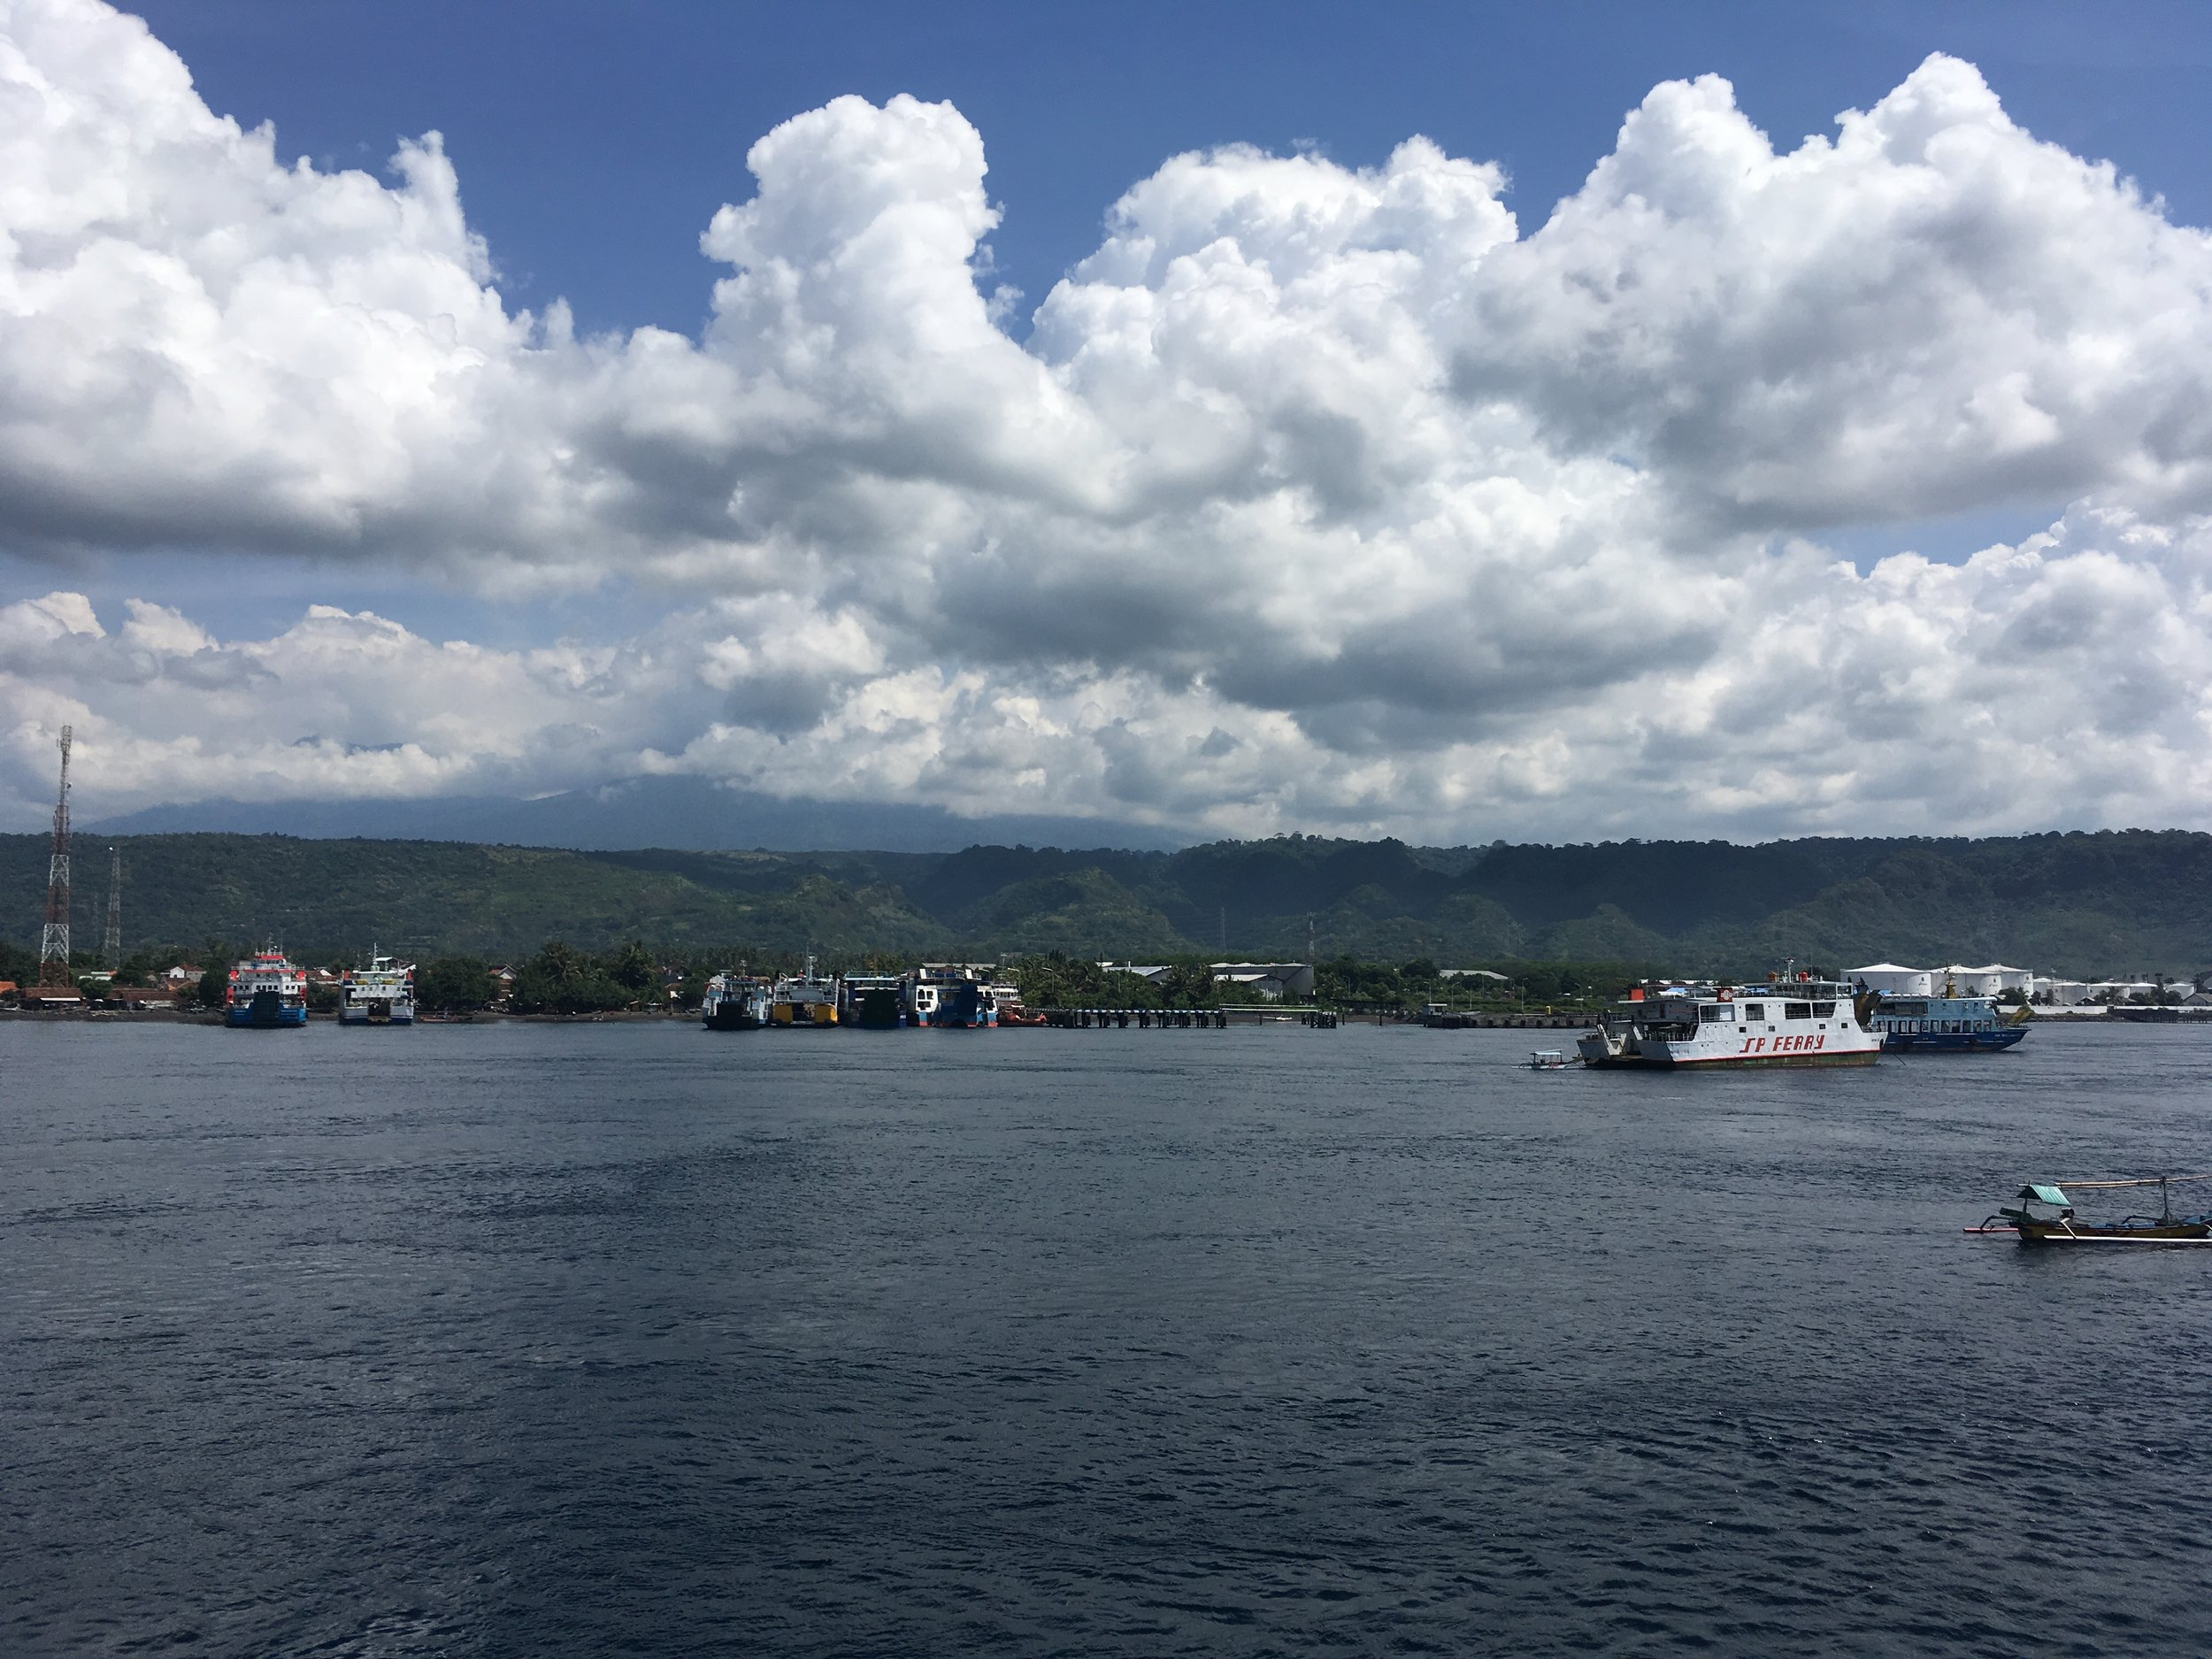 On the ferry from Java to Bali